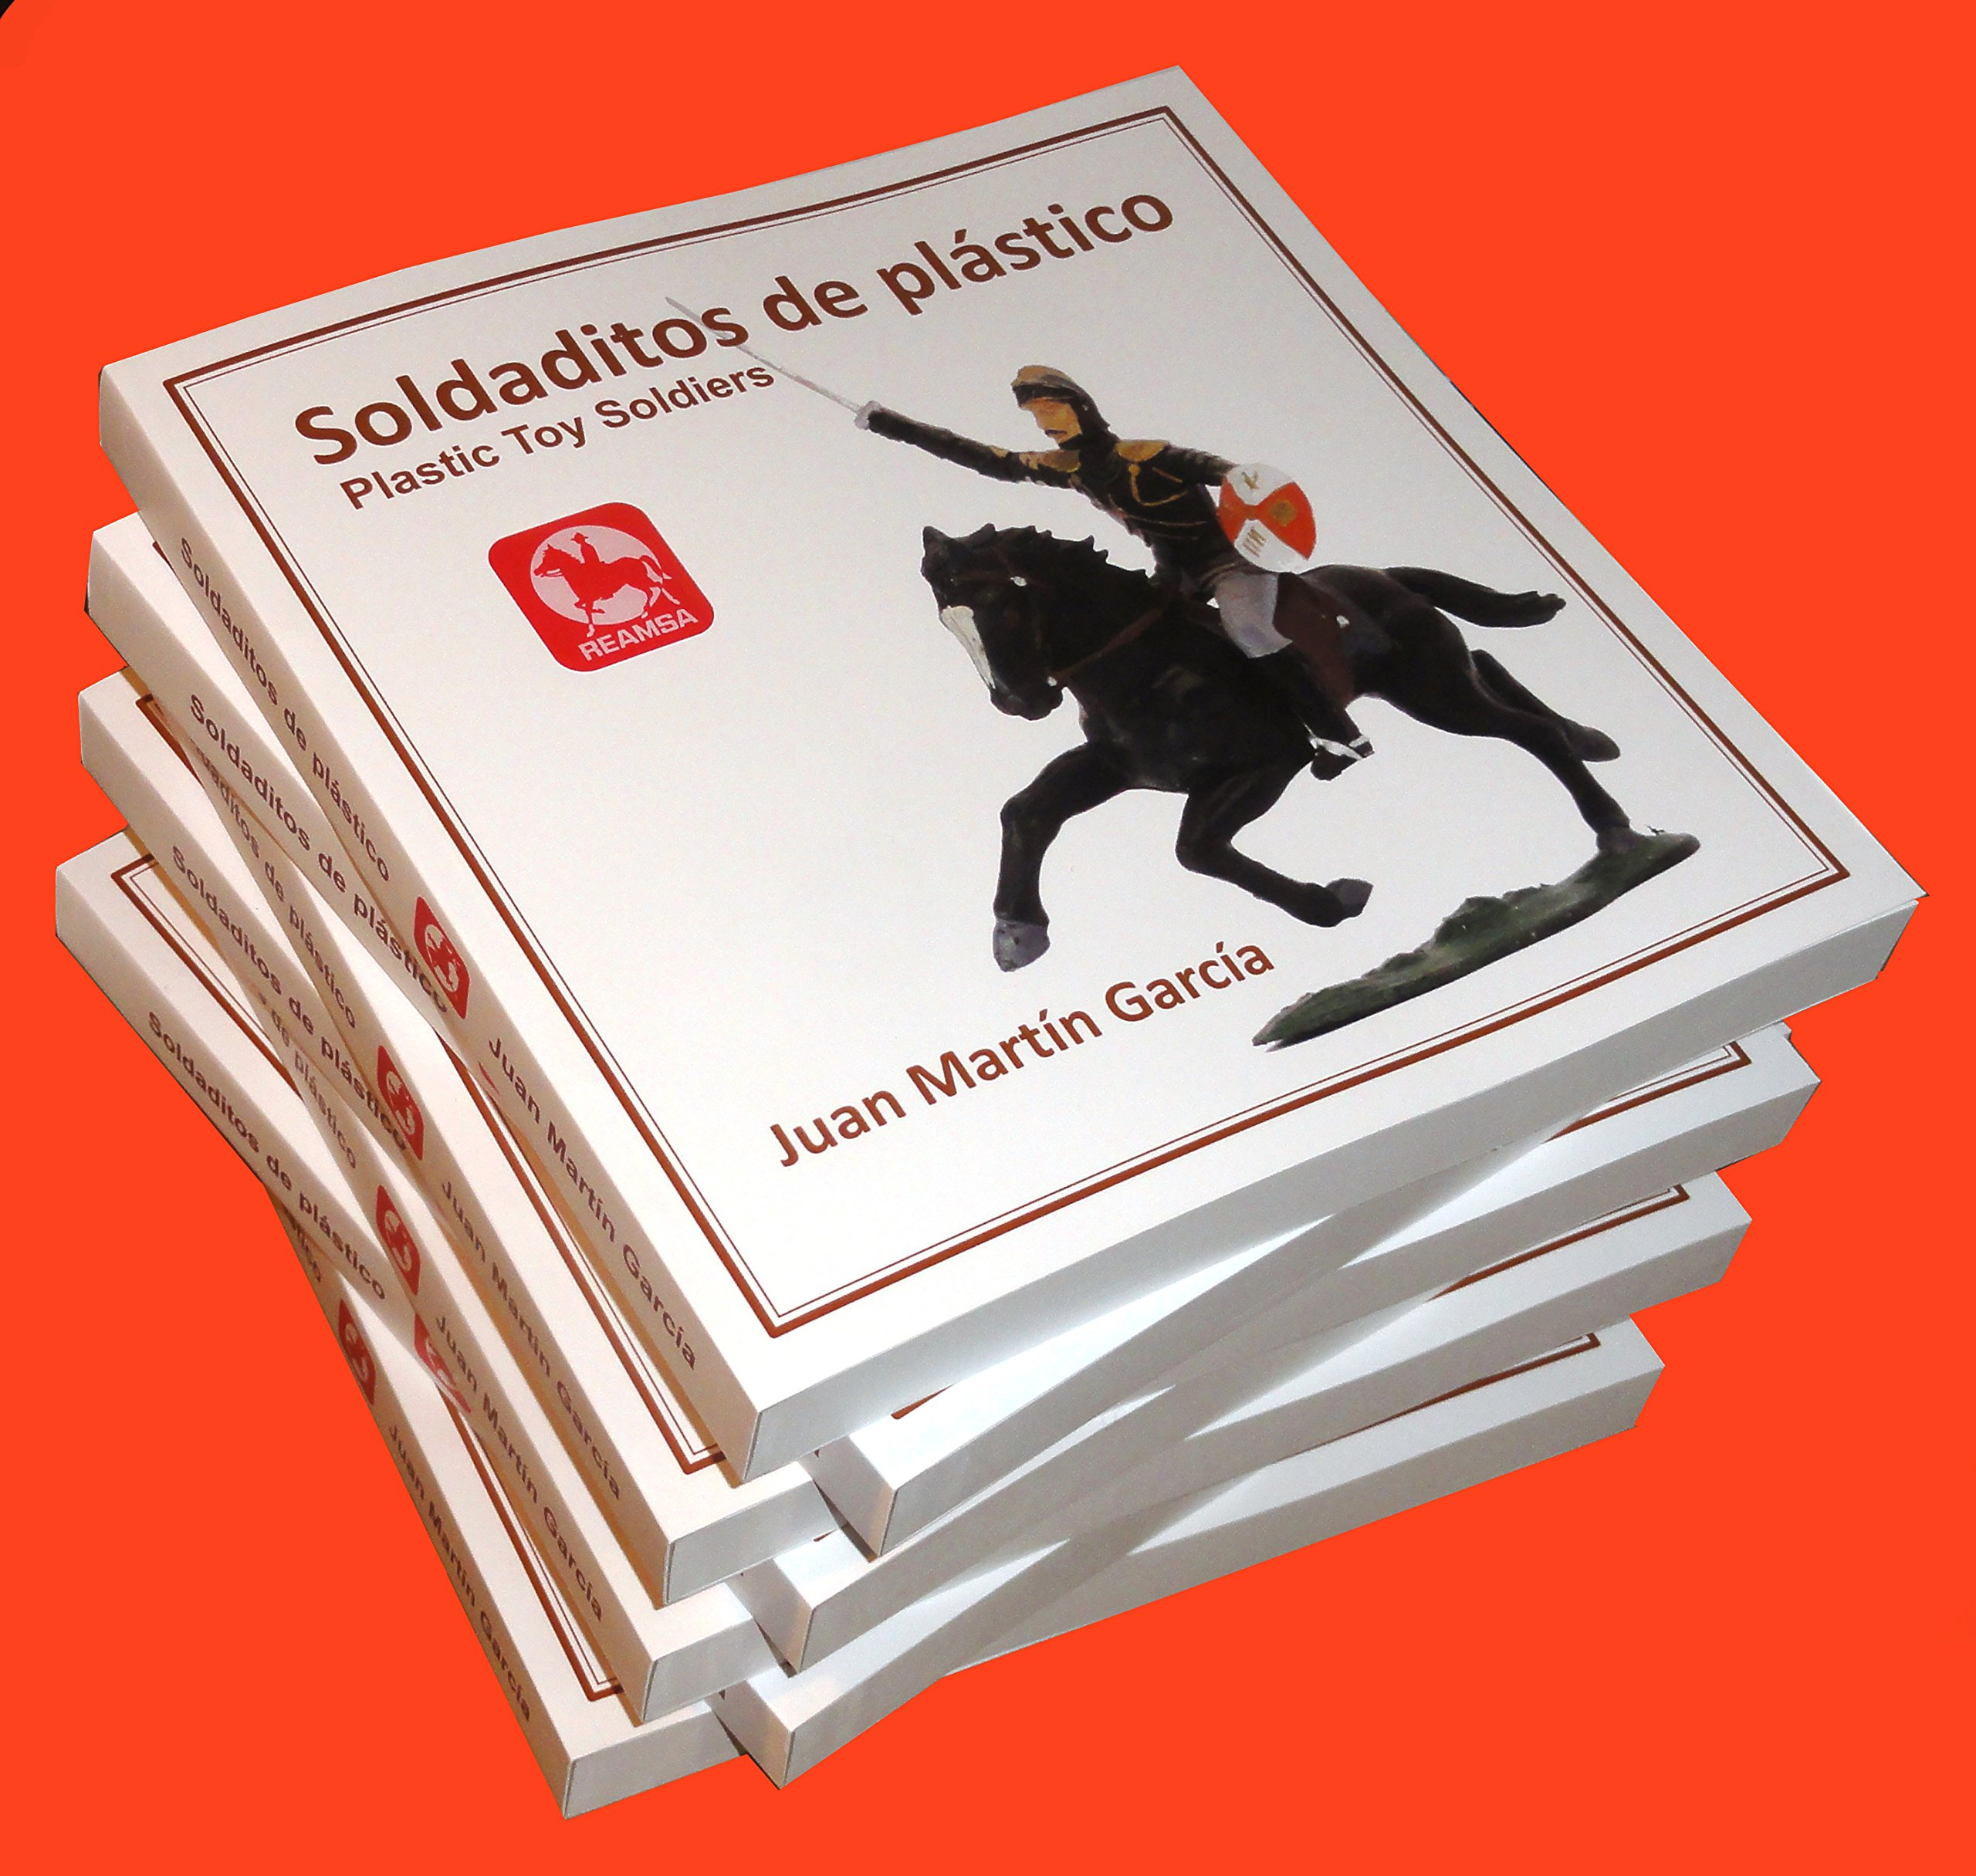 Soldaditos Reamsa Plastic Toy Soldiers: Juan Martin Garcia: 9788461777716: Amazon.com: Books